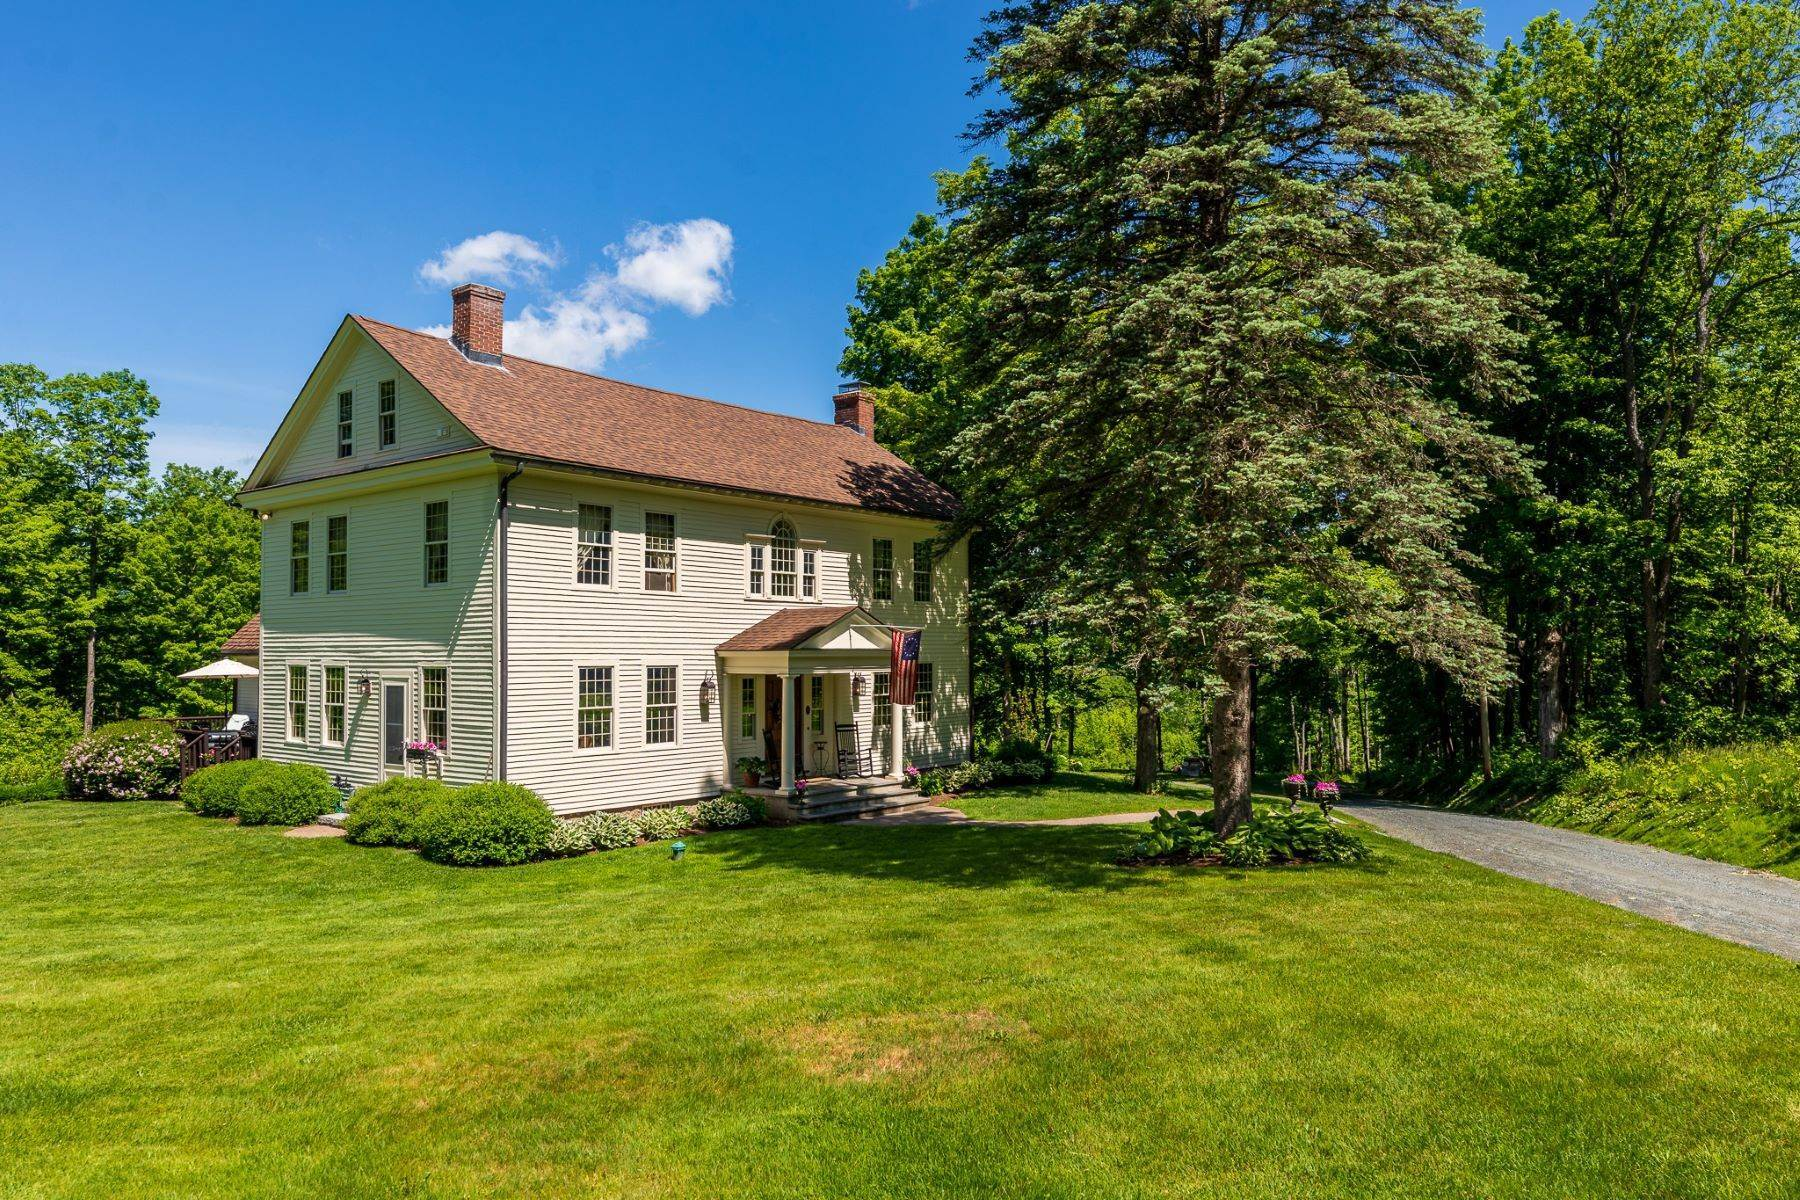 3. Single Family Homes for Sale at Spectacular Country Estate 28 Loomis Road Lebanon, New Hampshire 03766 United States